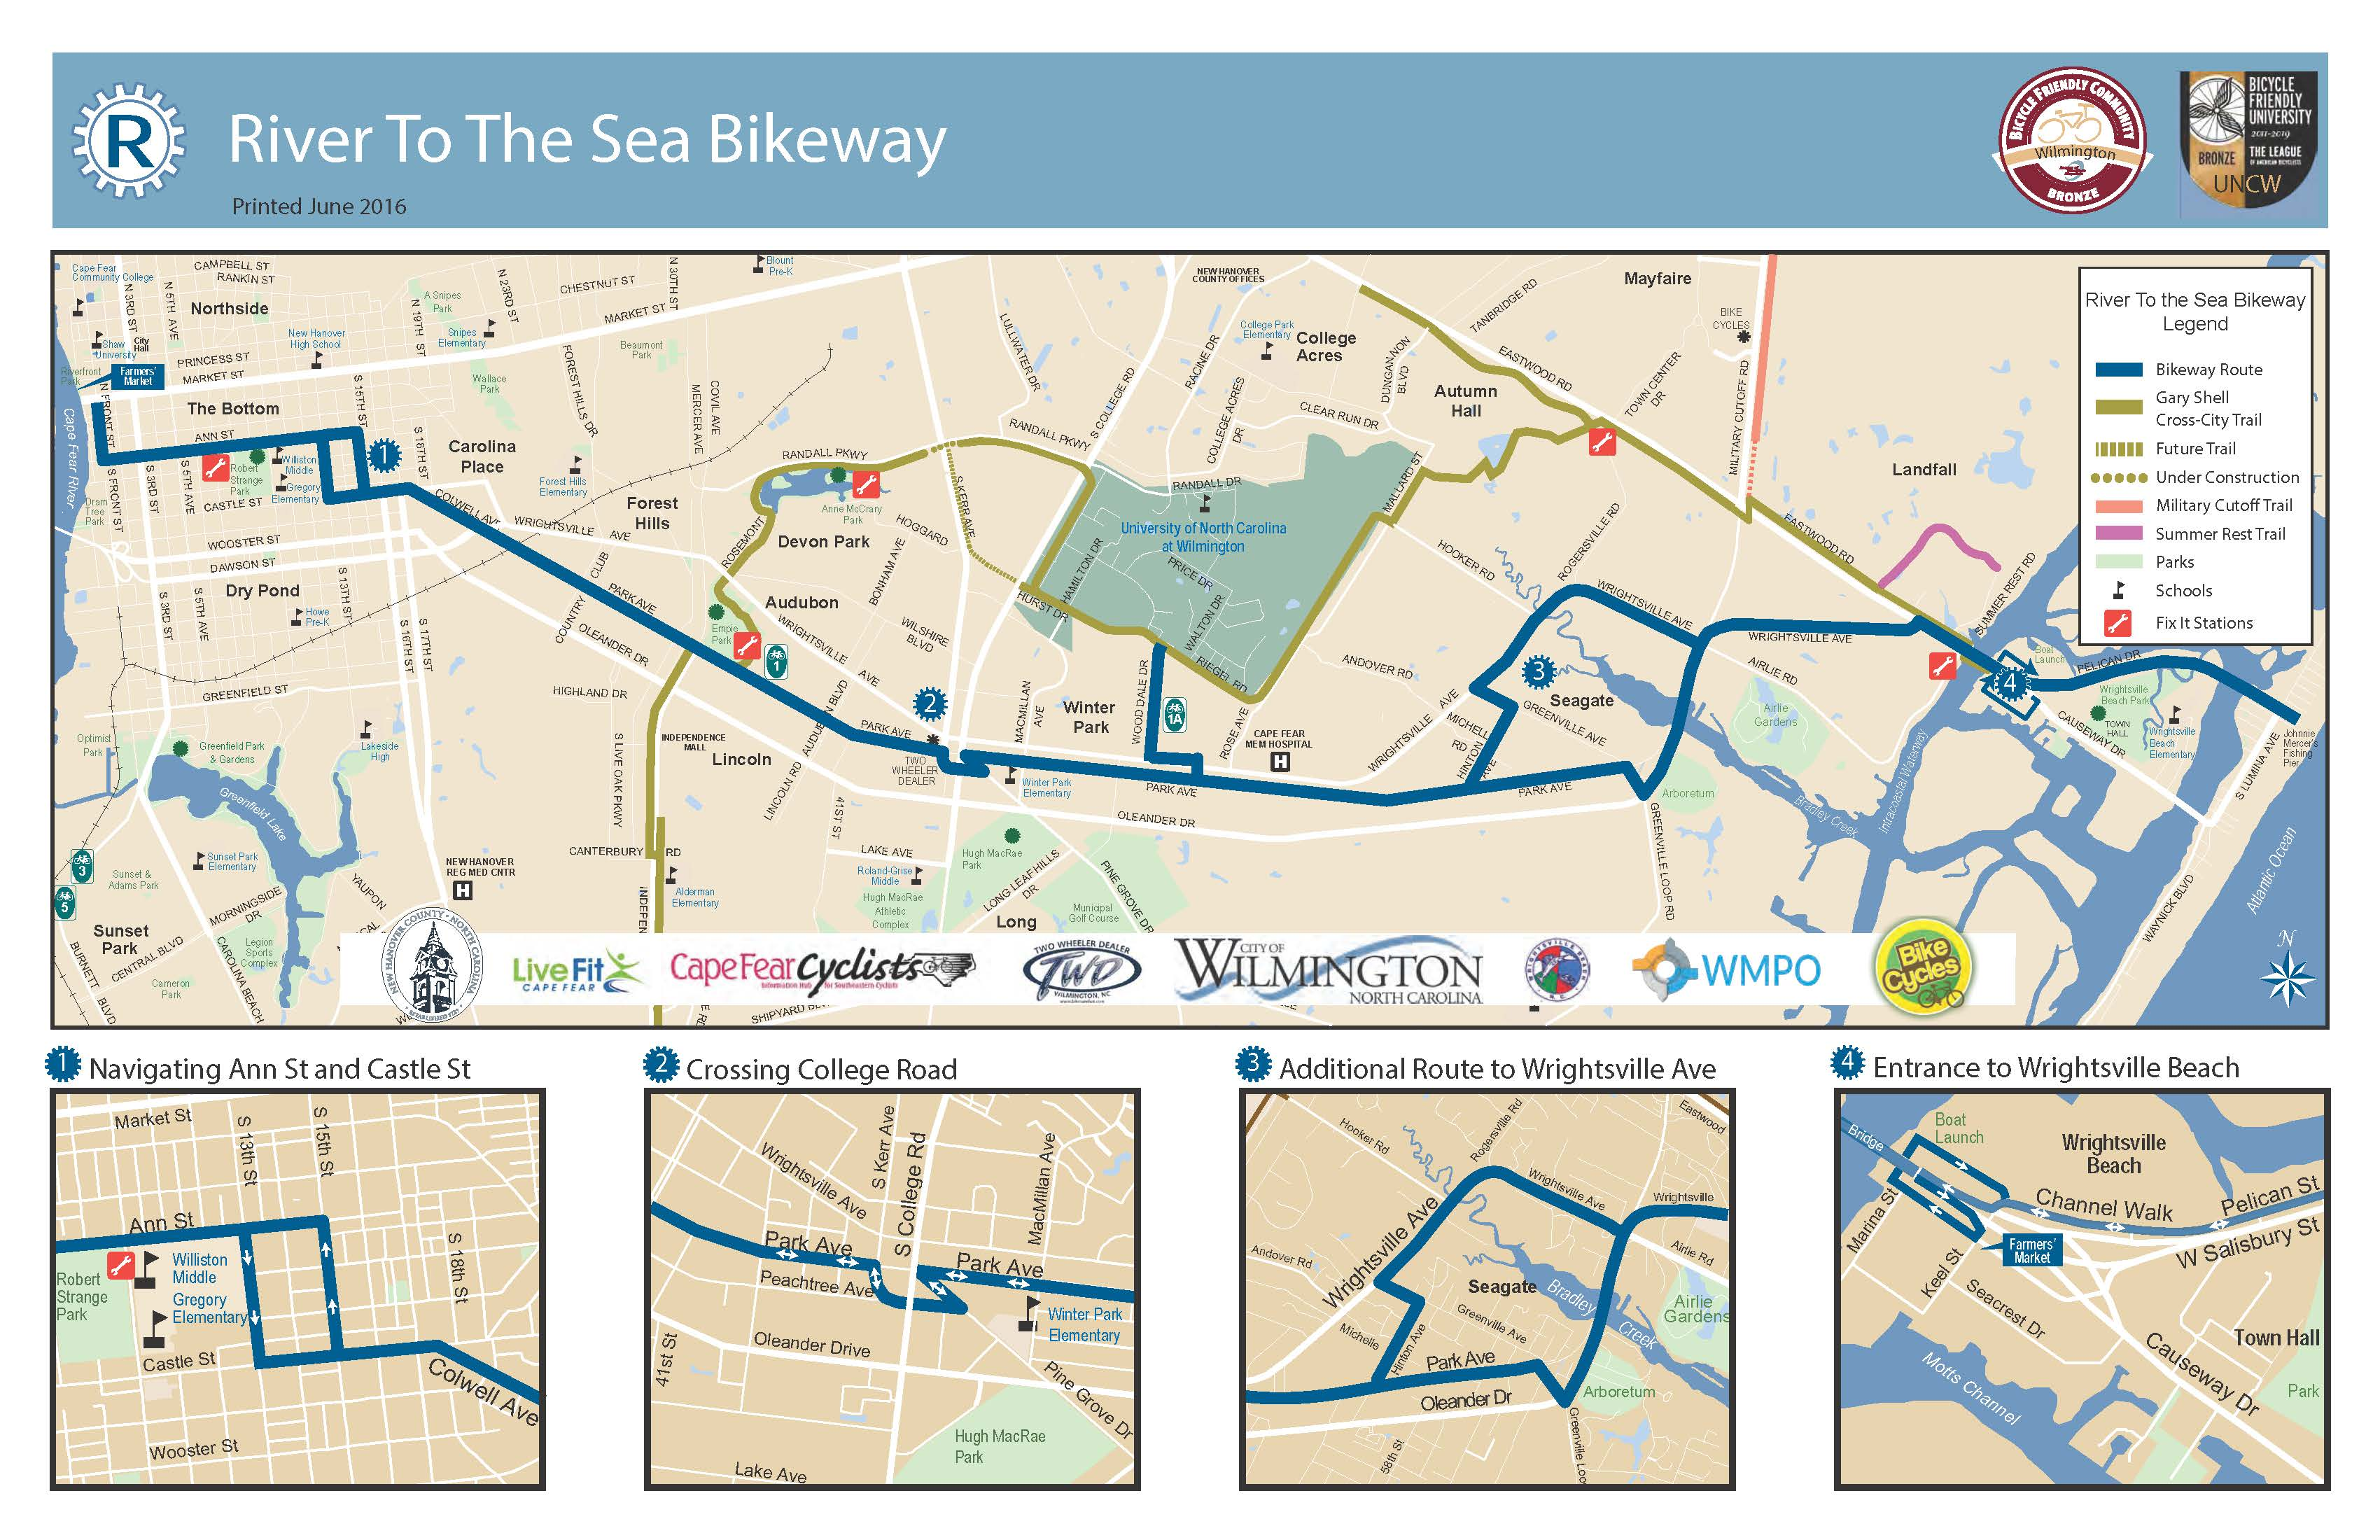 River To The Sea Bikeway In Wilmington Nc